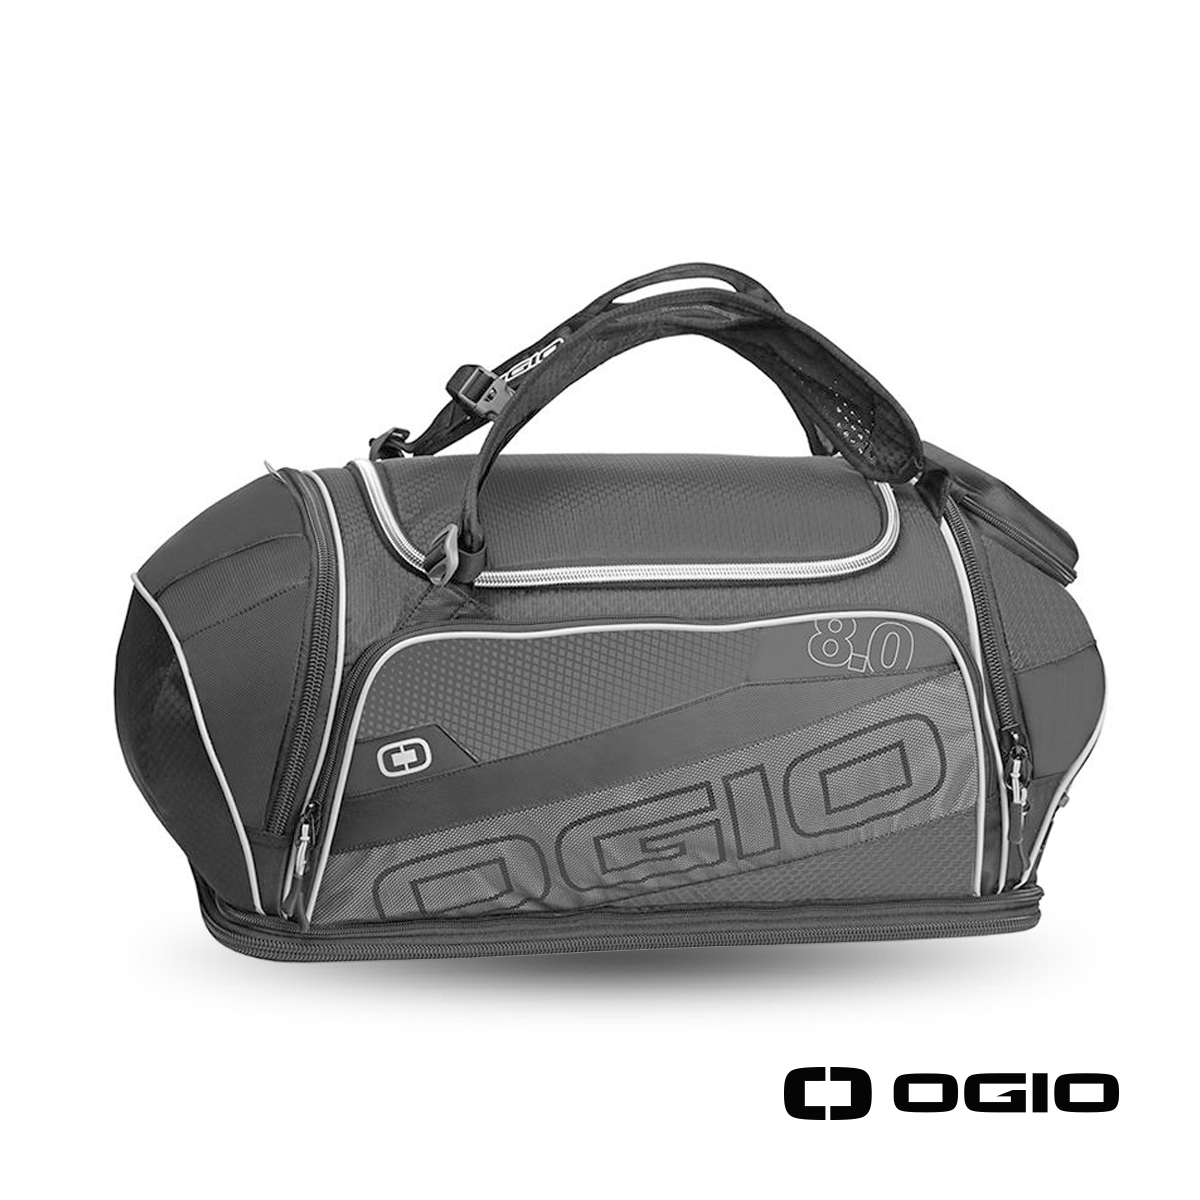 Bolso Ogio 8.0 Endurance Bag